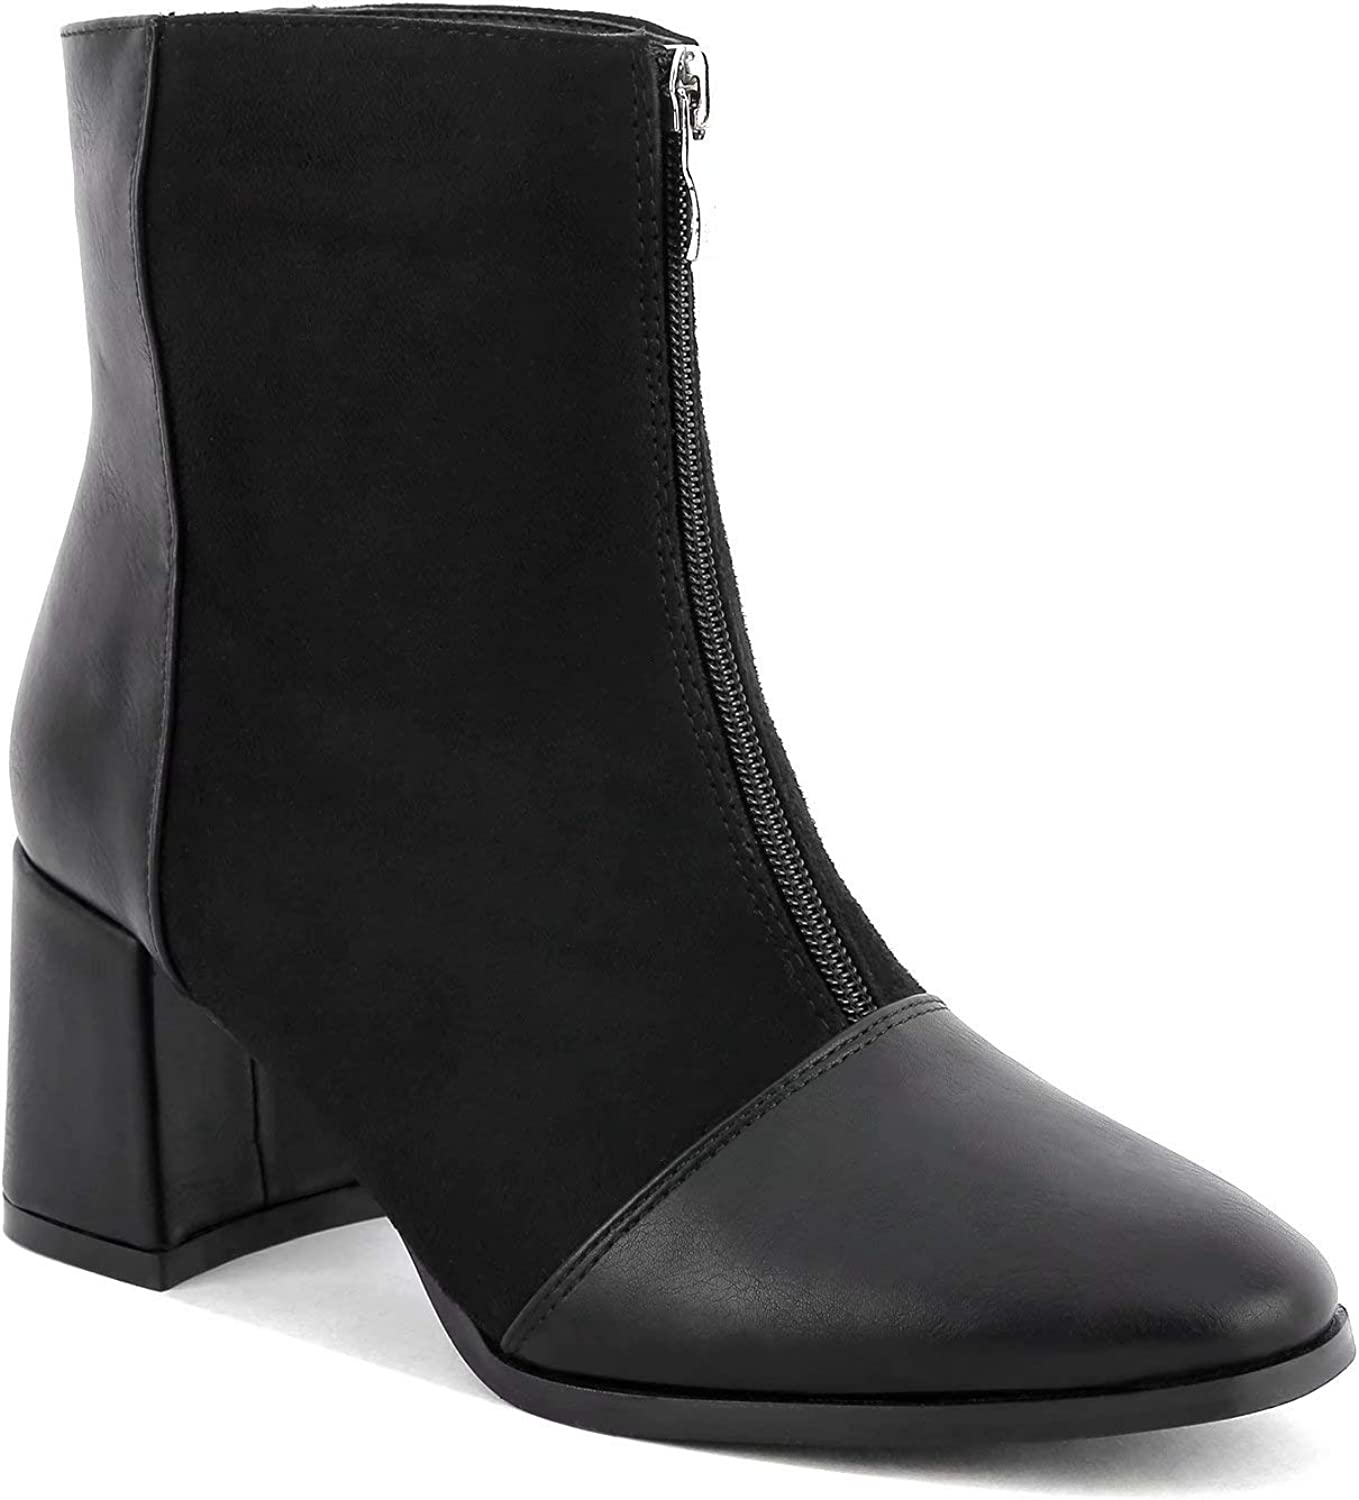 MaxMuxun Womens Ankle Boots Chunky Block Heel Max 65% OFF Front F Zipper Low Limited time trial price